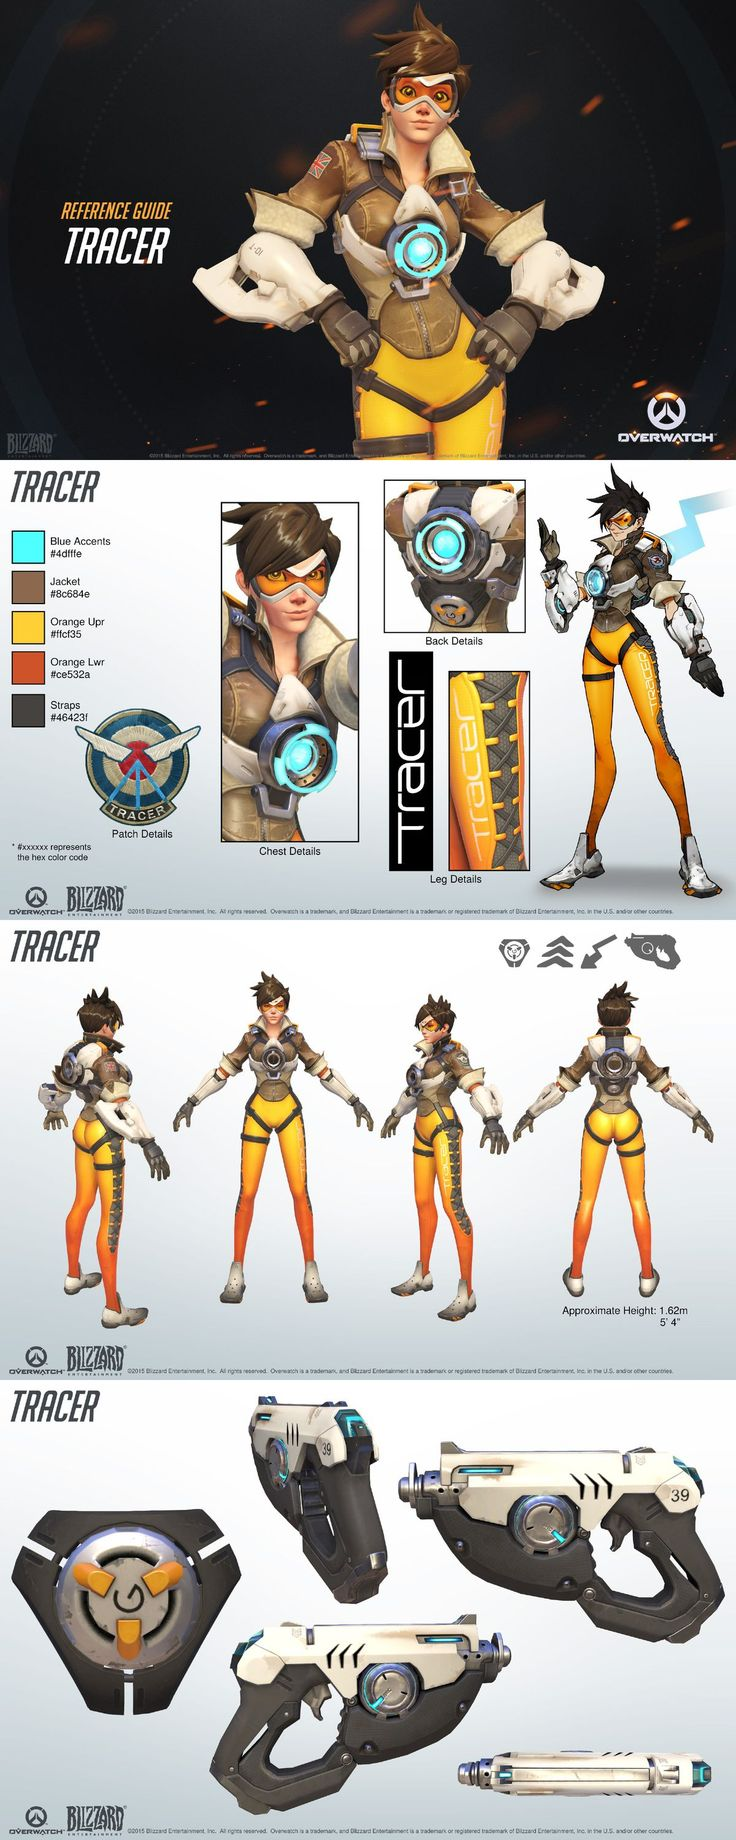 78 Best images about overwatch on Pinterest | Character ...